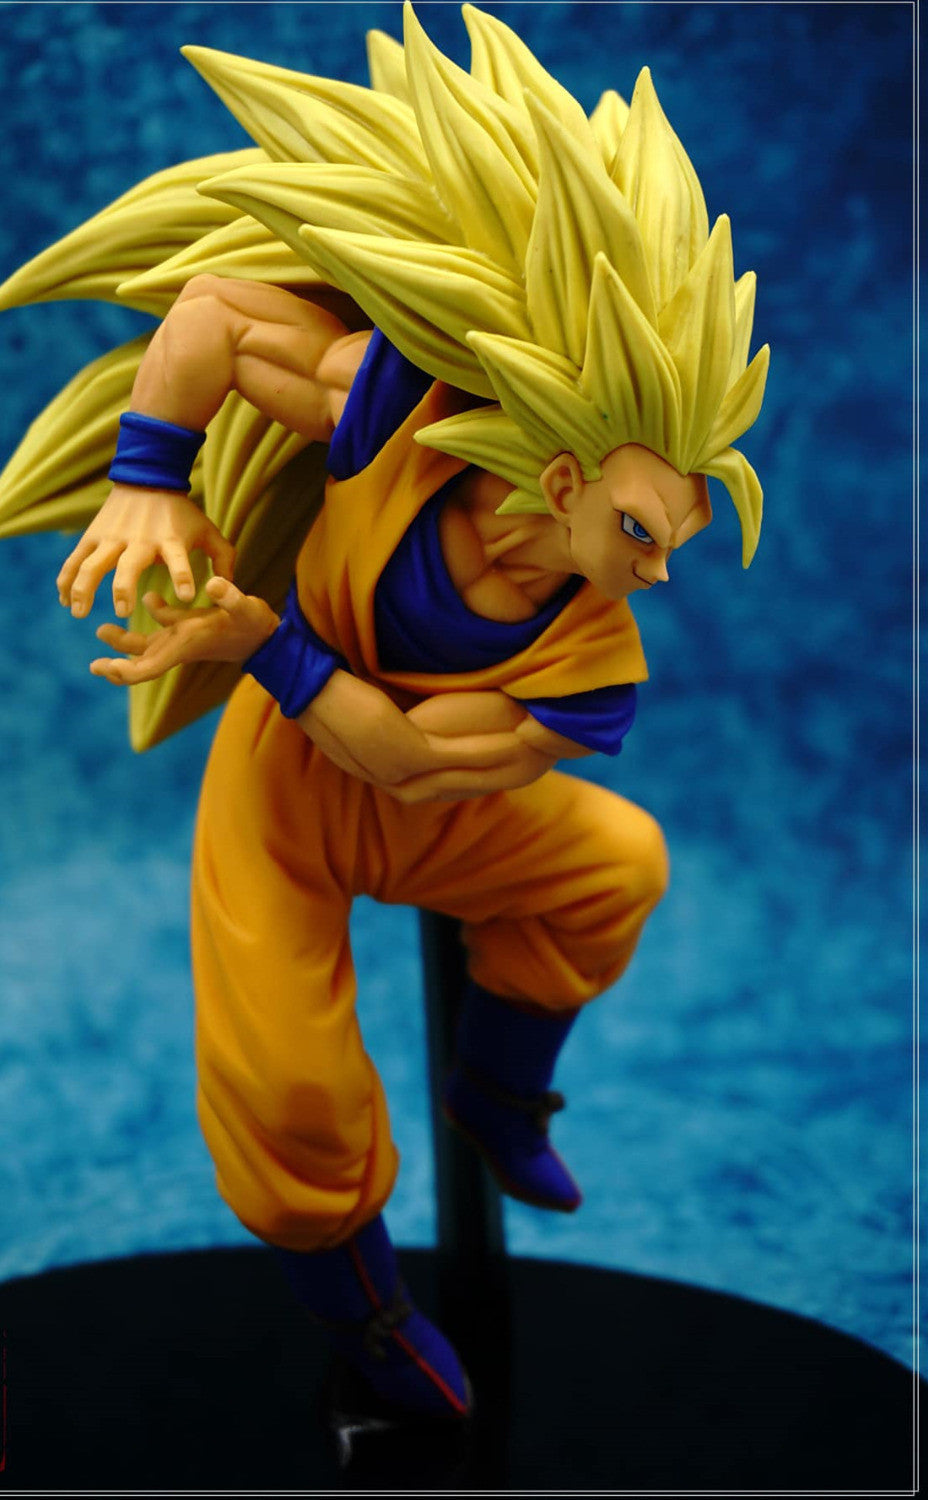 dragon ball z goku ssj3 super saiyan action figure pvc collection